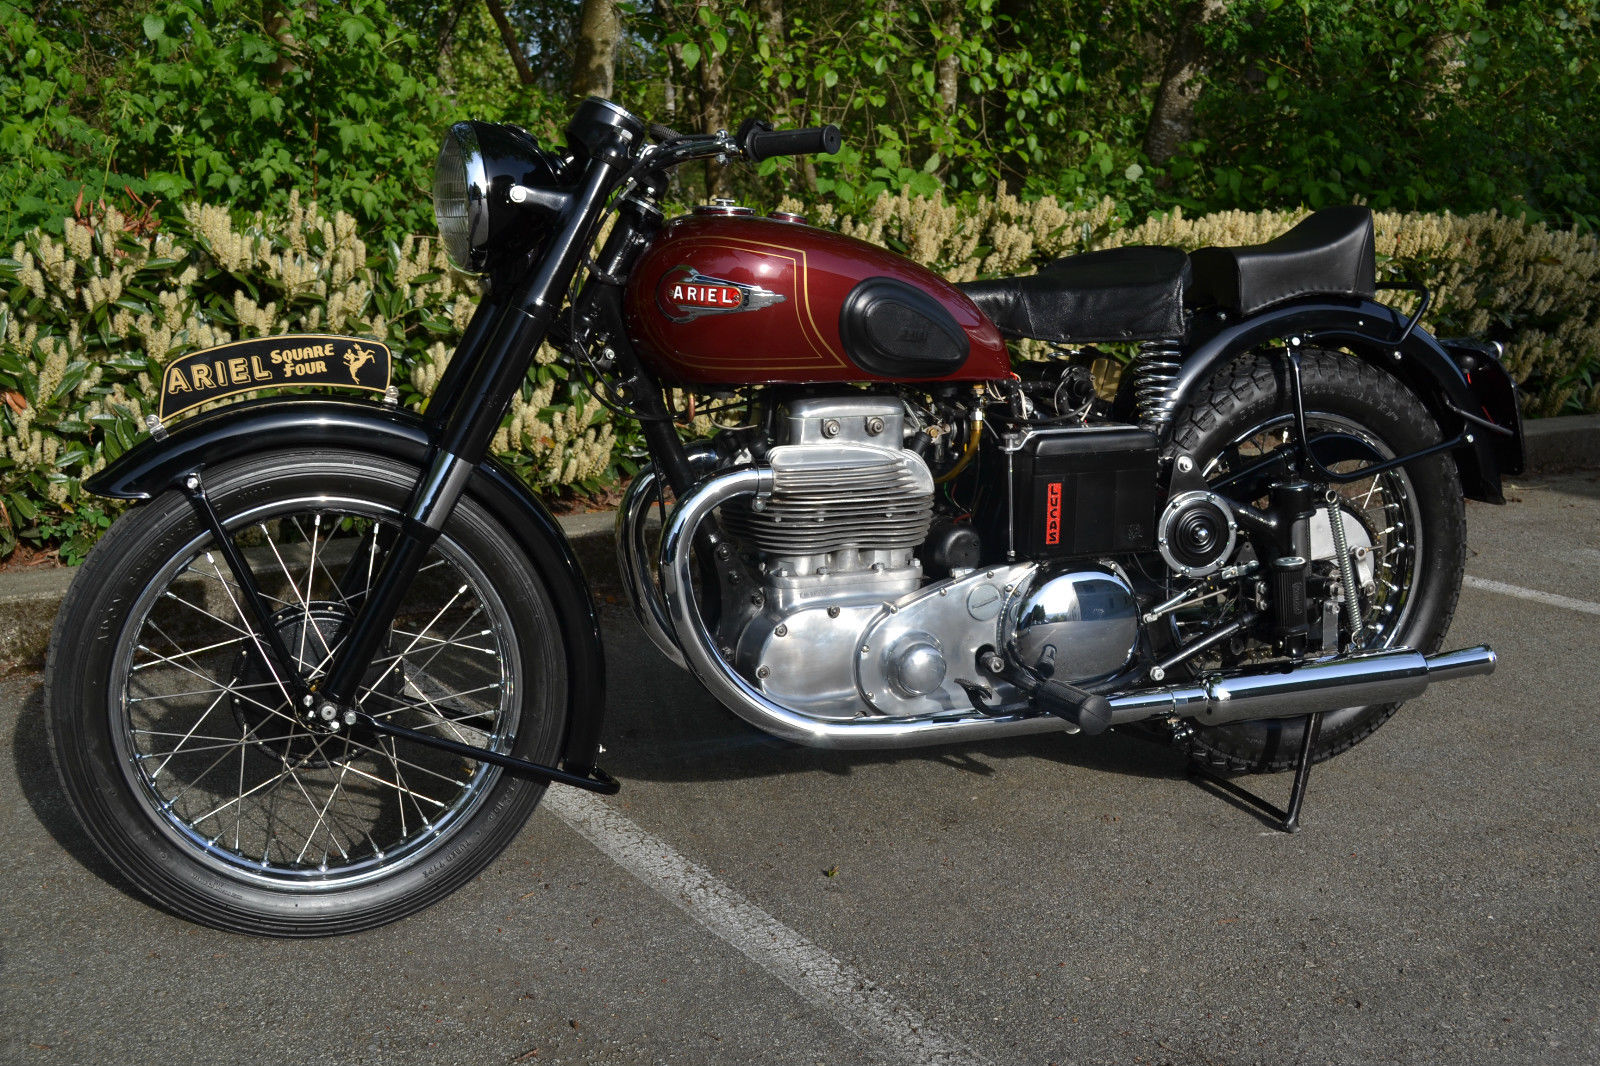 Ariel Square Four - 1952 - Engine and Gearbox, Petrol Tank and Horn.